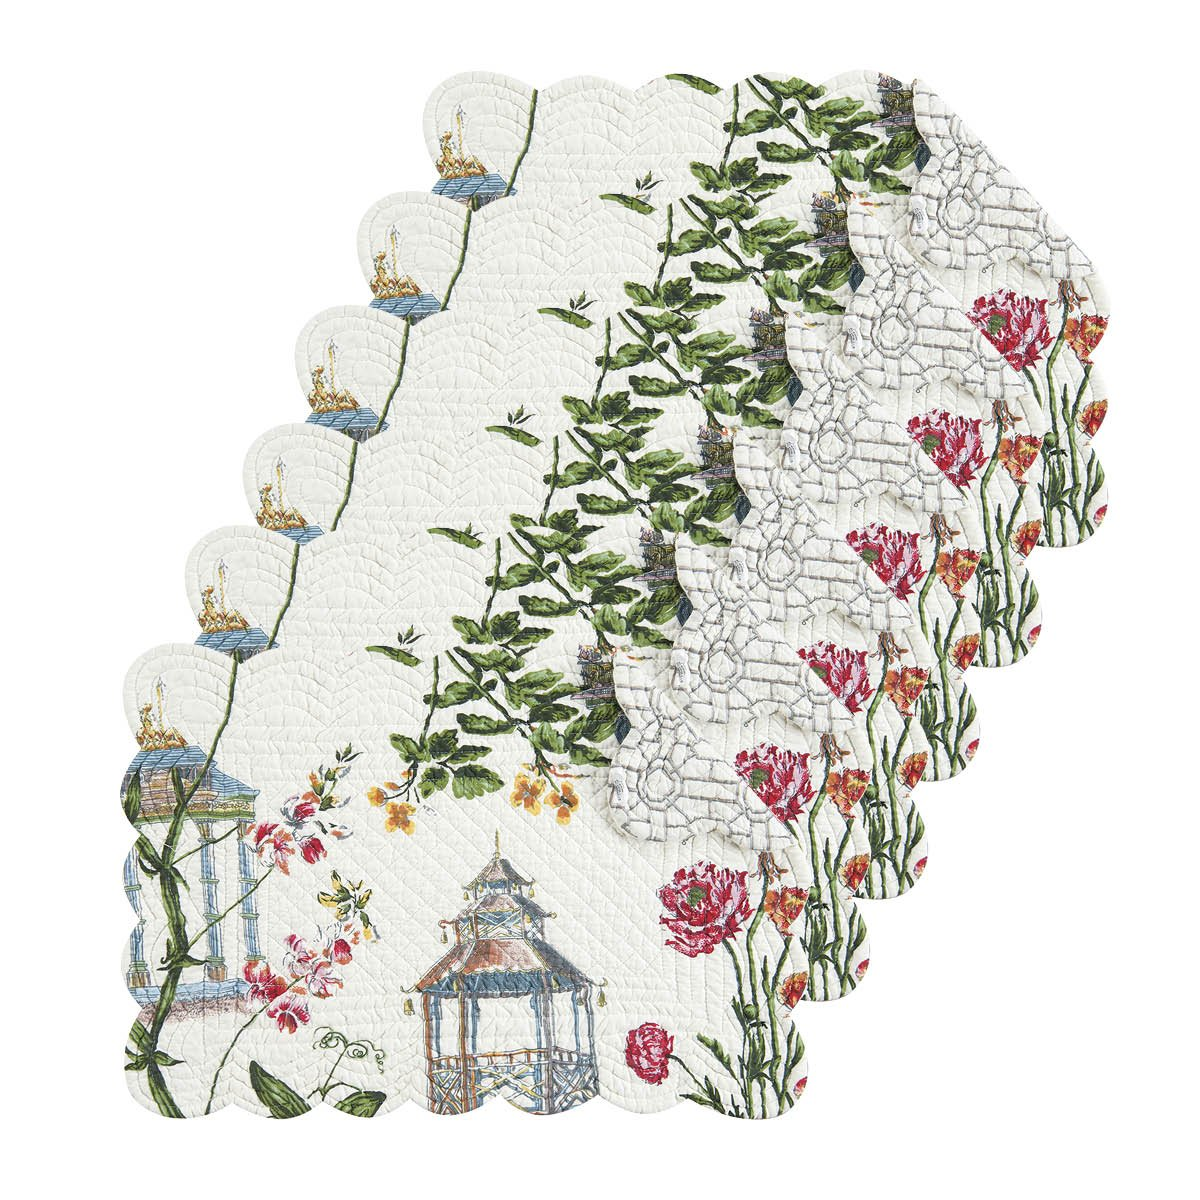 Garden Folly Tabletop親 Rectangular Placemat Set of 6 862621648S6 Rectangular Placemat Set of 6  B0762QPKBG